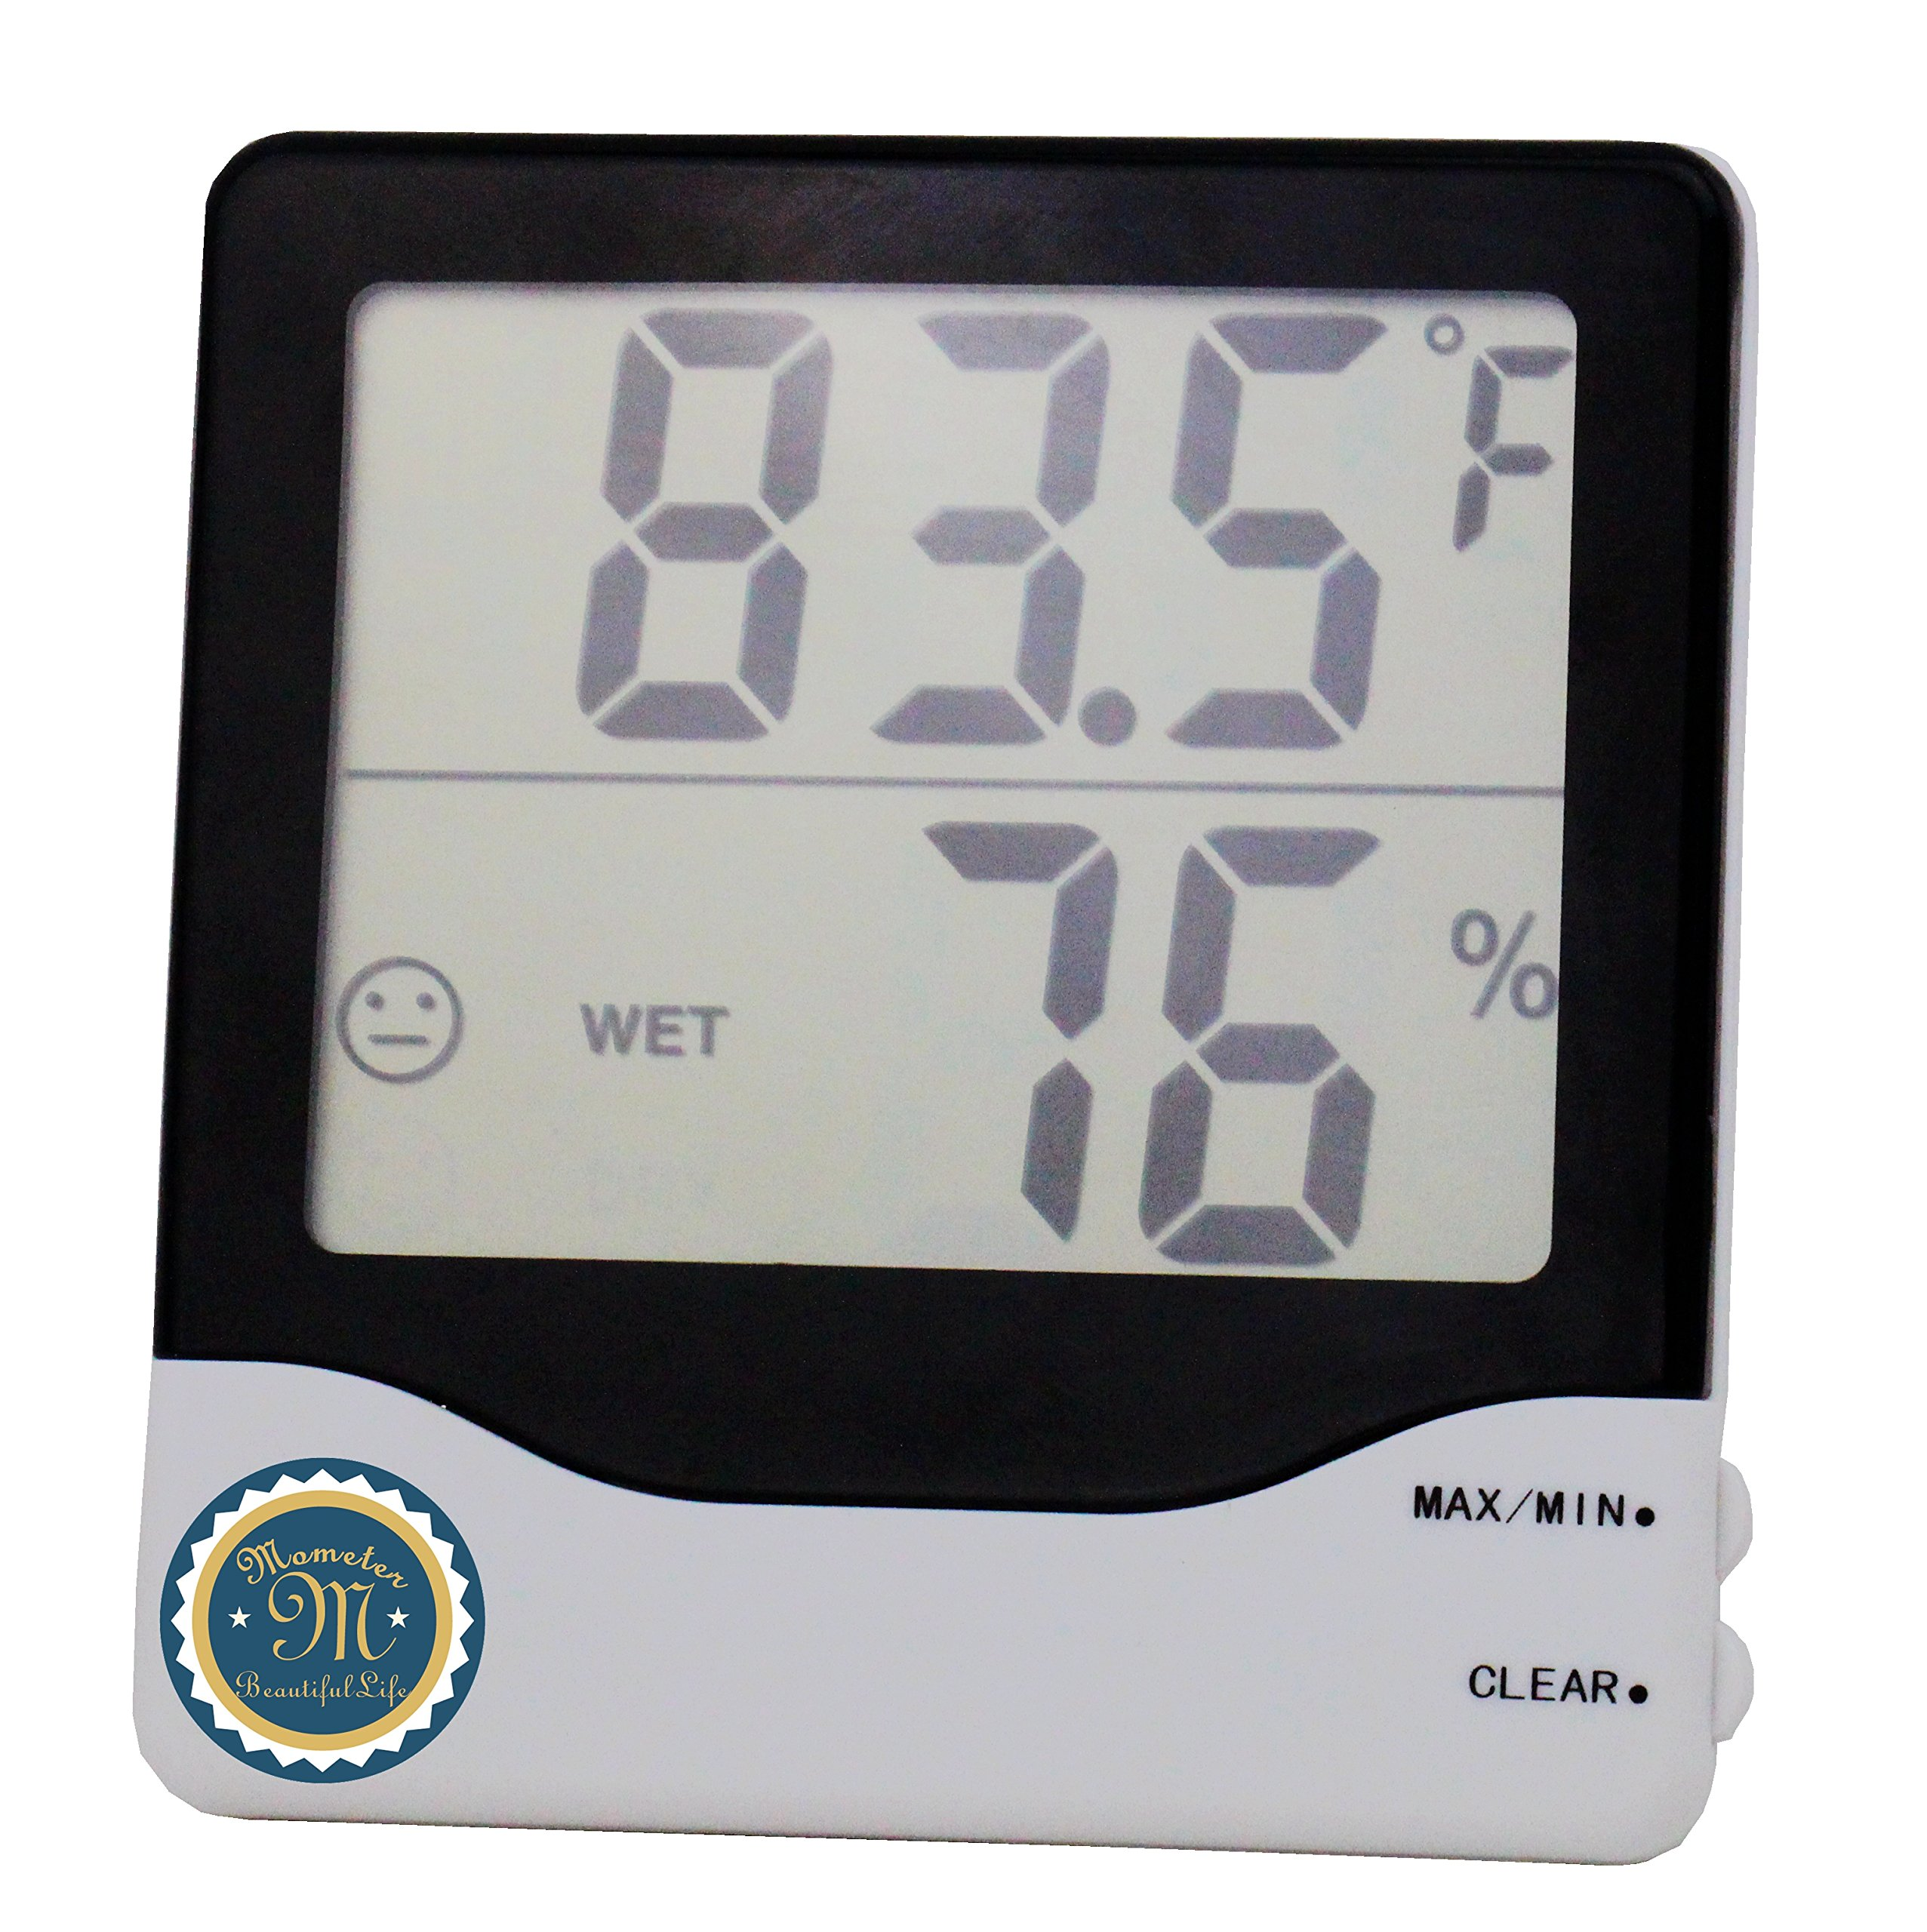 M-Mometer Easy Read Baby Room Thermometer Hygrometer. Indoor Temperature Humidity in Celsius & Fahrenheit MIN/MAX records for Office, School, Hotel and Kindergarten